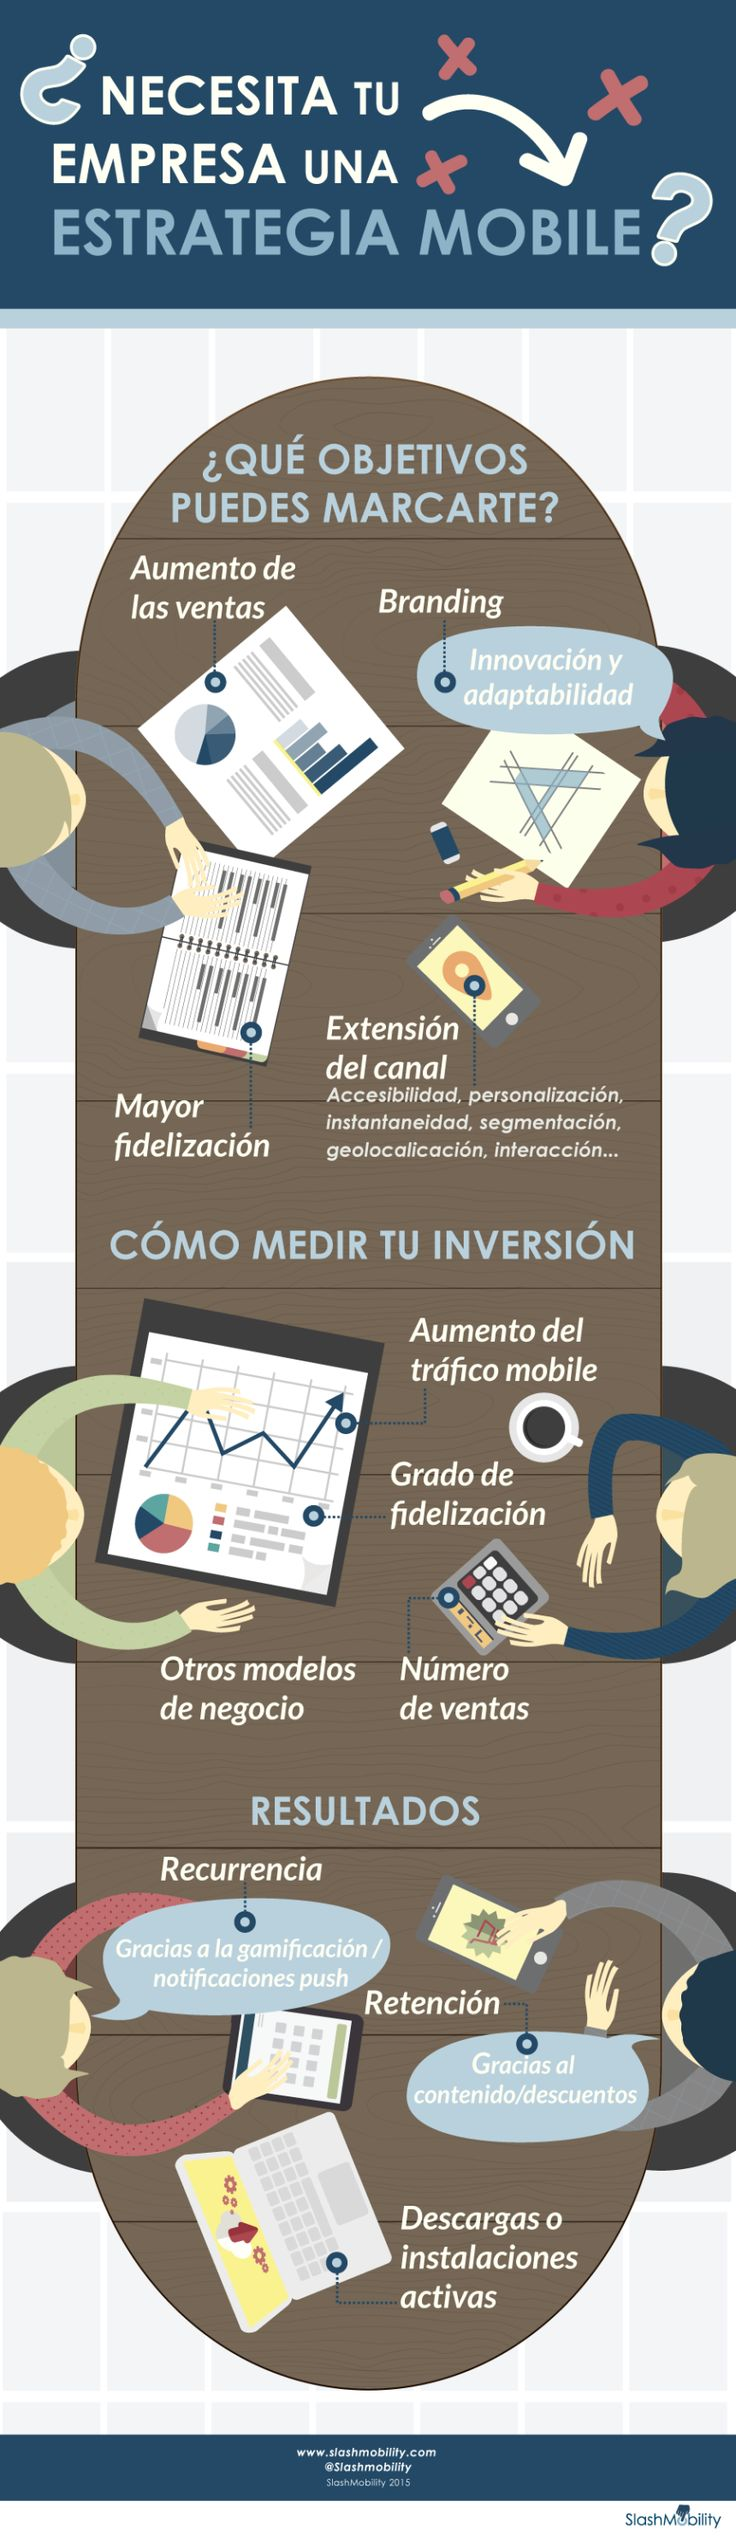 ¿Necesita tu empresa una estrategia móvil? #mobile #marketing #solomo cc @anlsm30